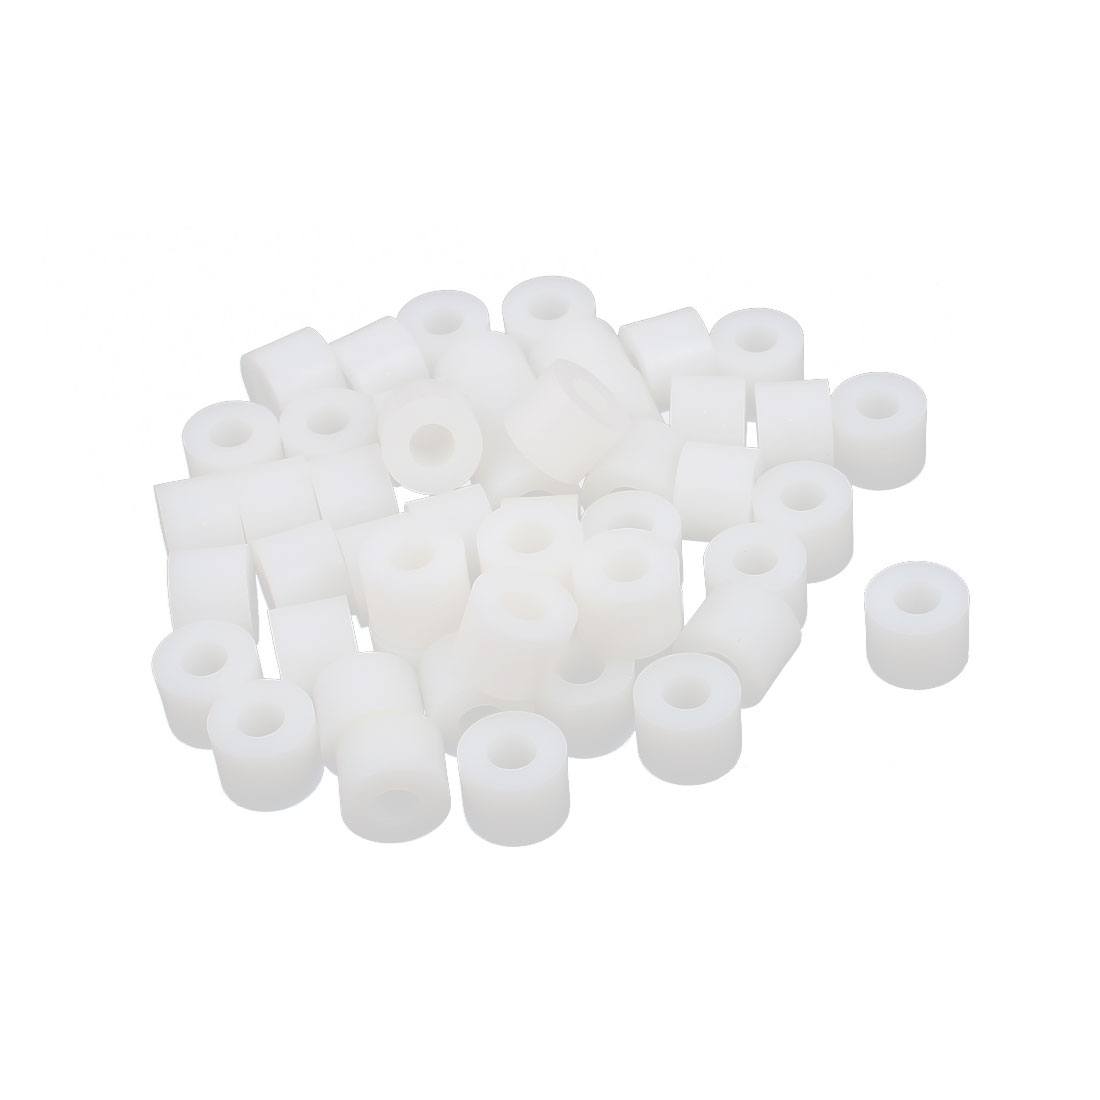 Round Plastic Column Standoff Support Spacer Tube White 12x9mm 50pcs